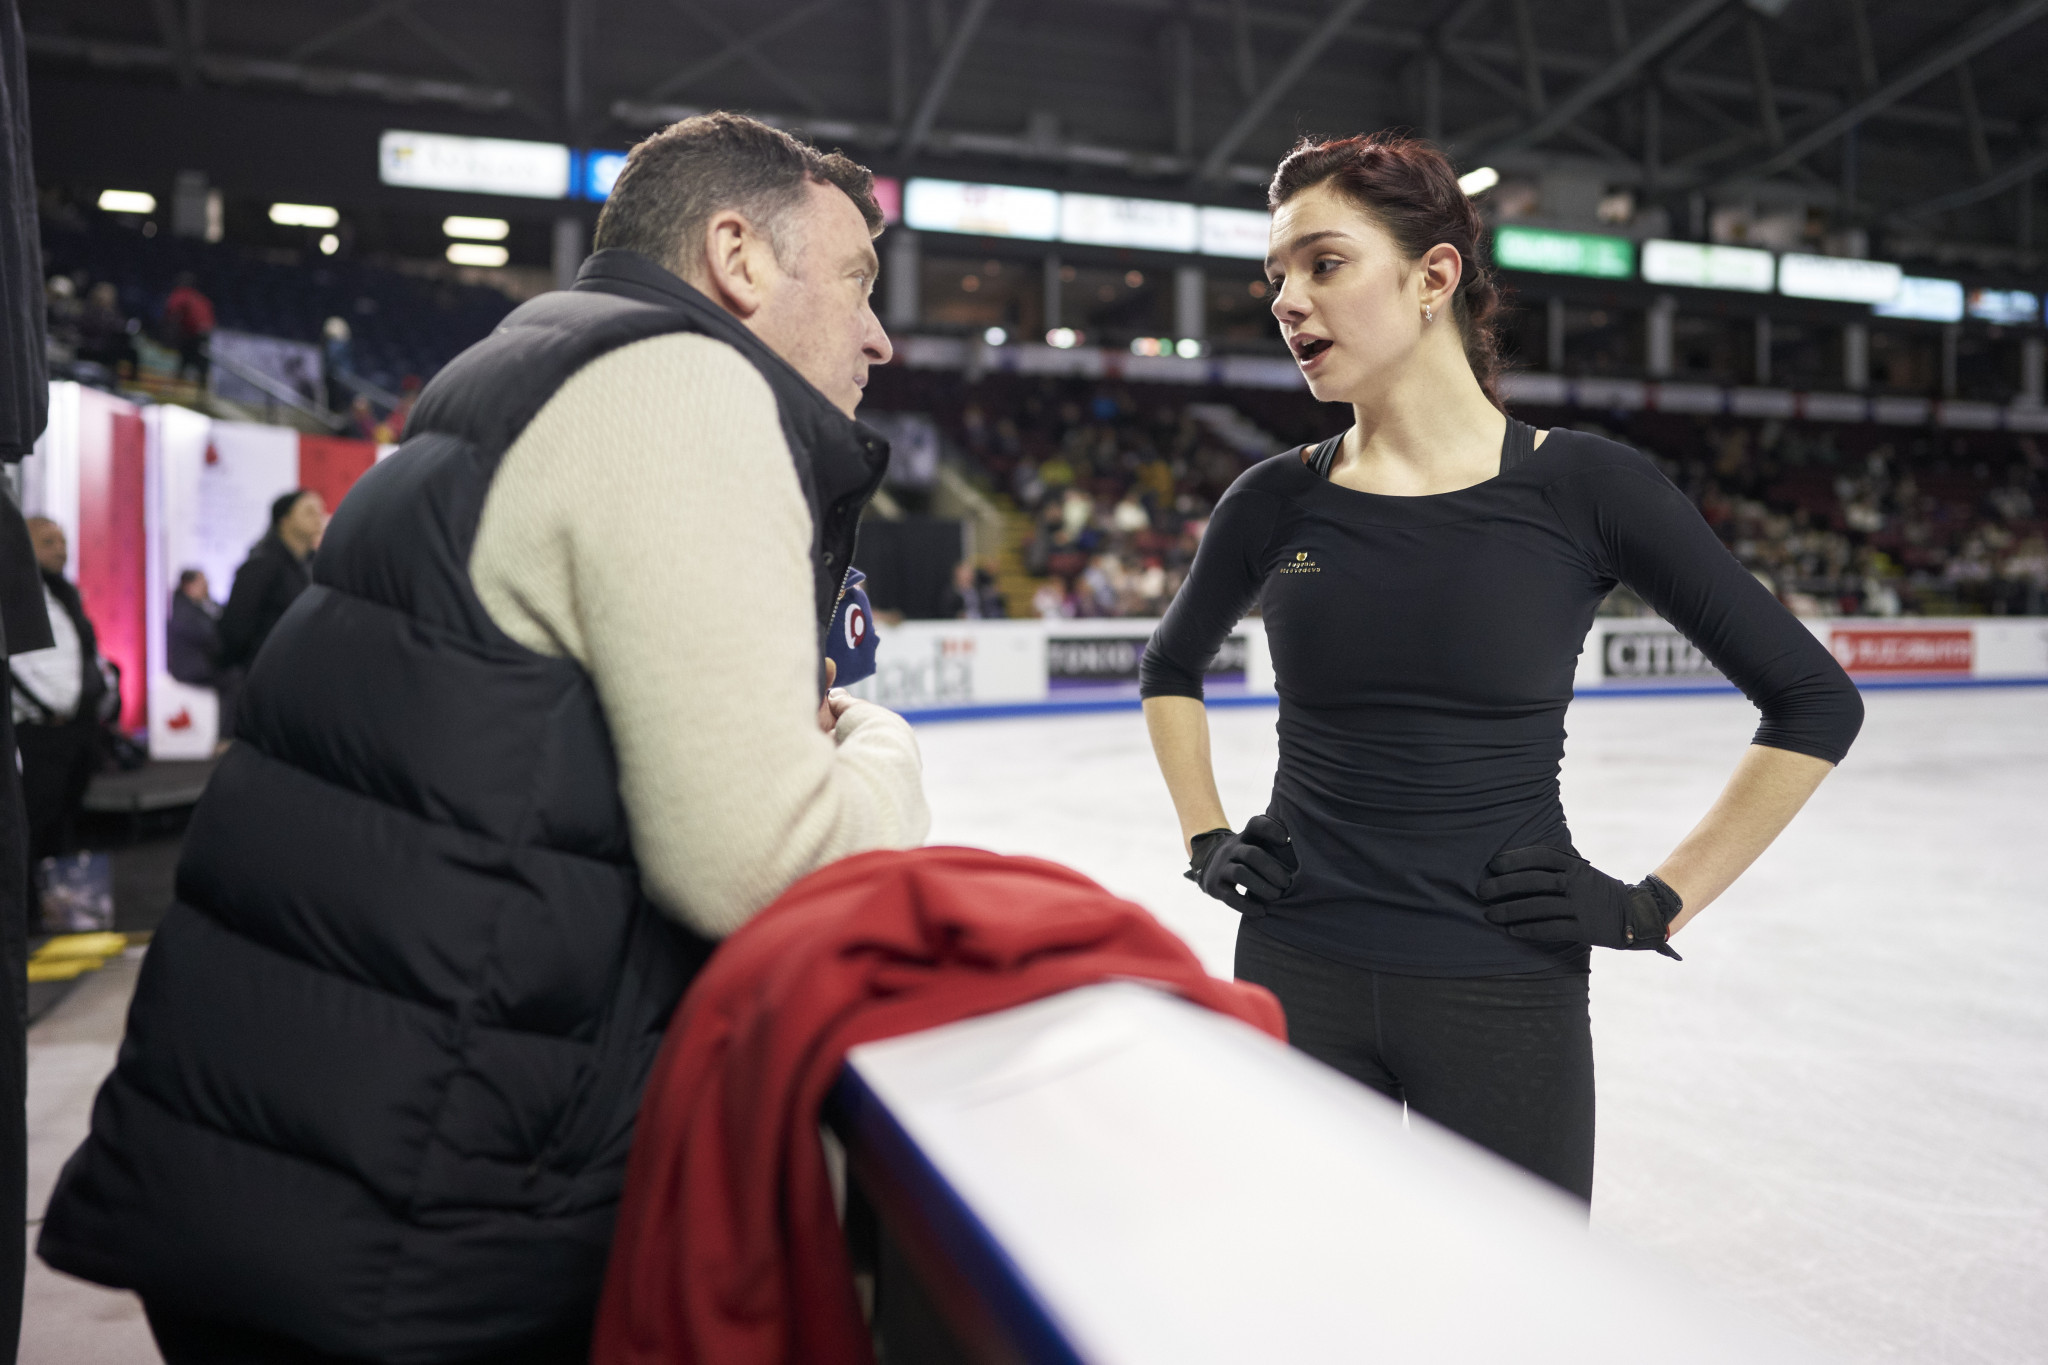 Evgenia Medvedeva had been coached by Brian Orser ©Getty Images